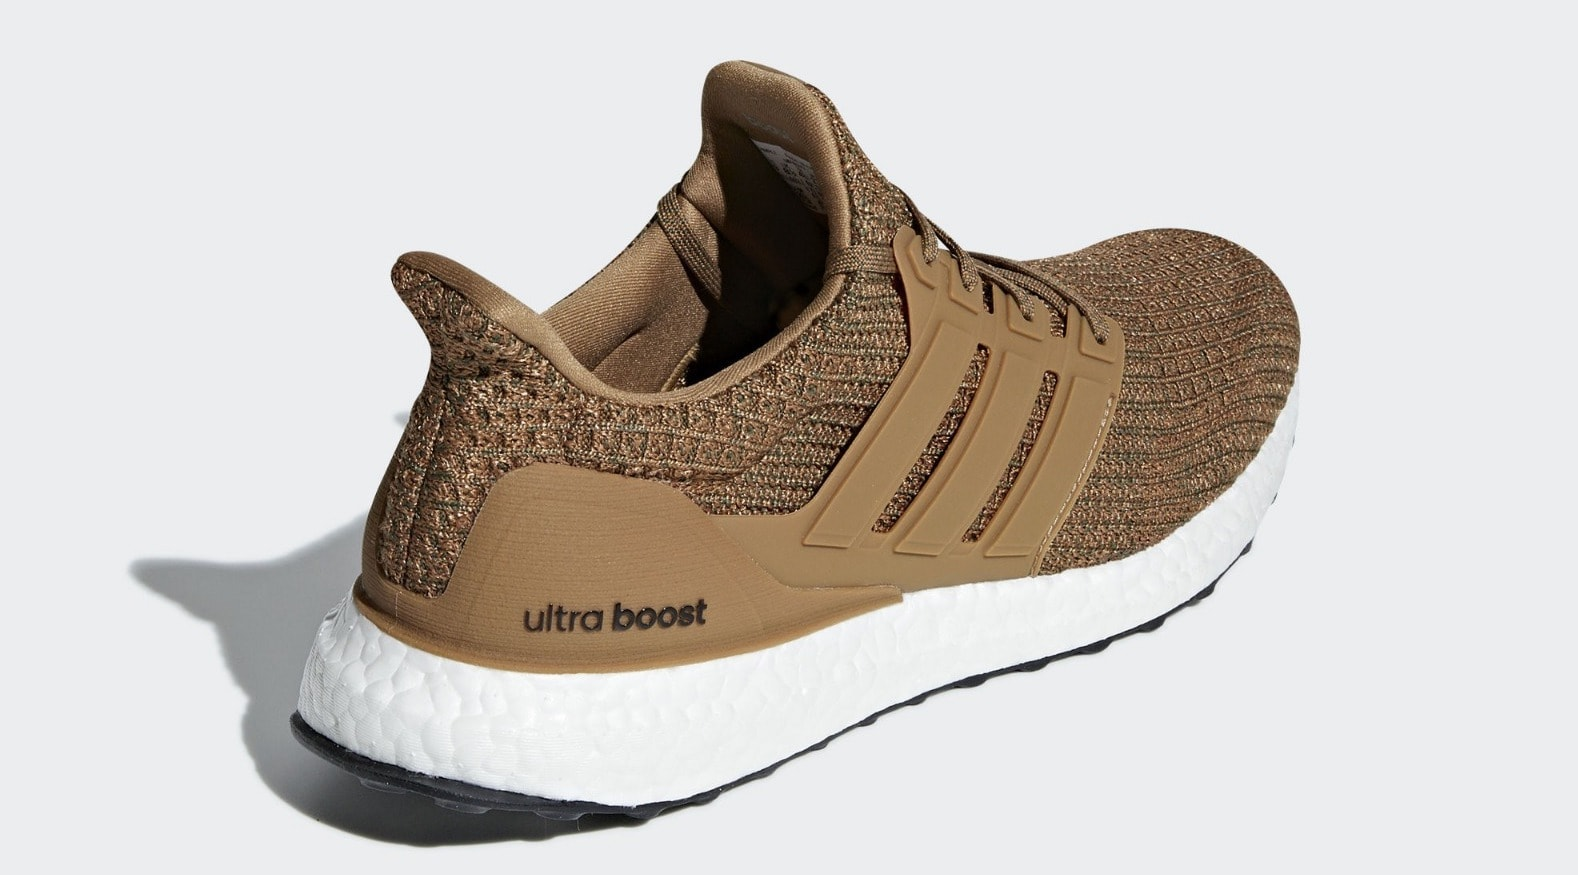 45fa547f7 ... core  adidas ultra boost 4.0 raw desert release date september 18th  2018. price 180. color